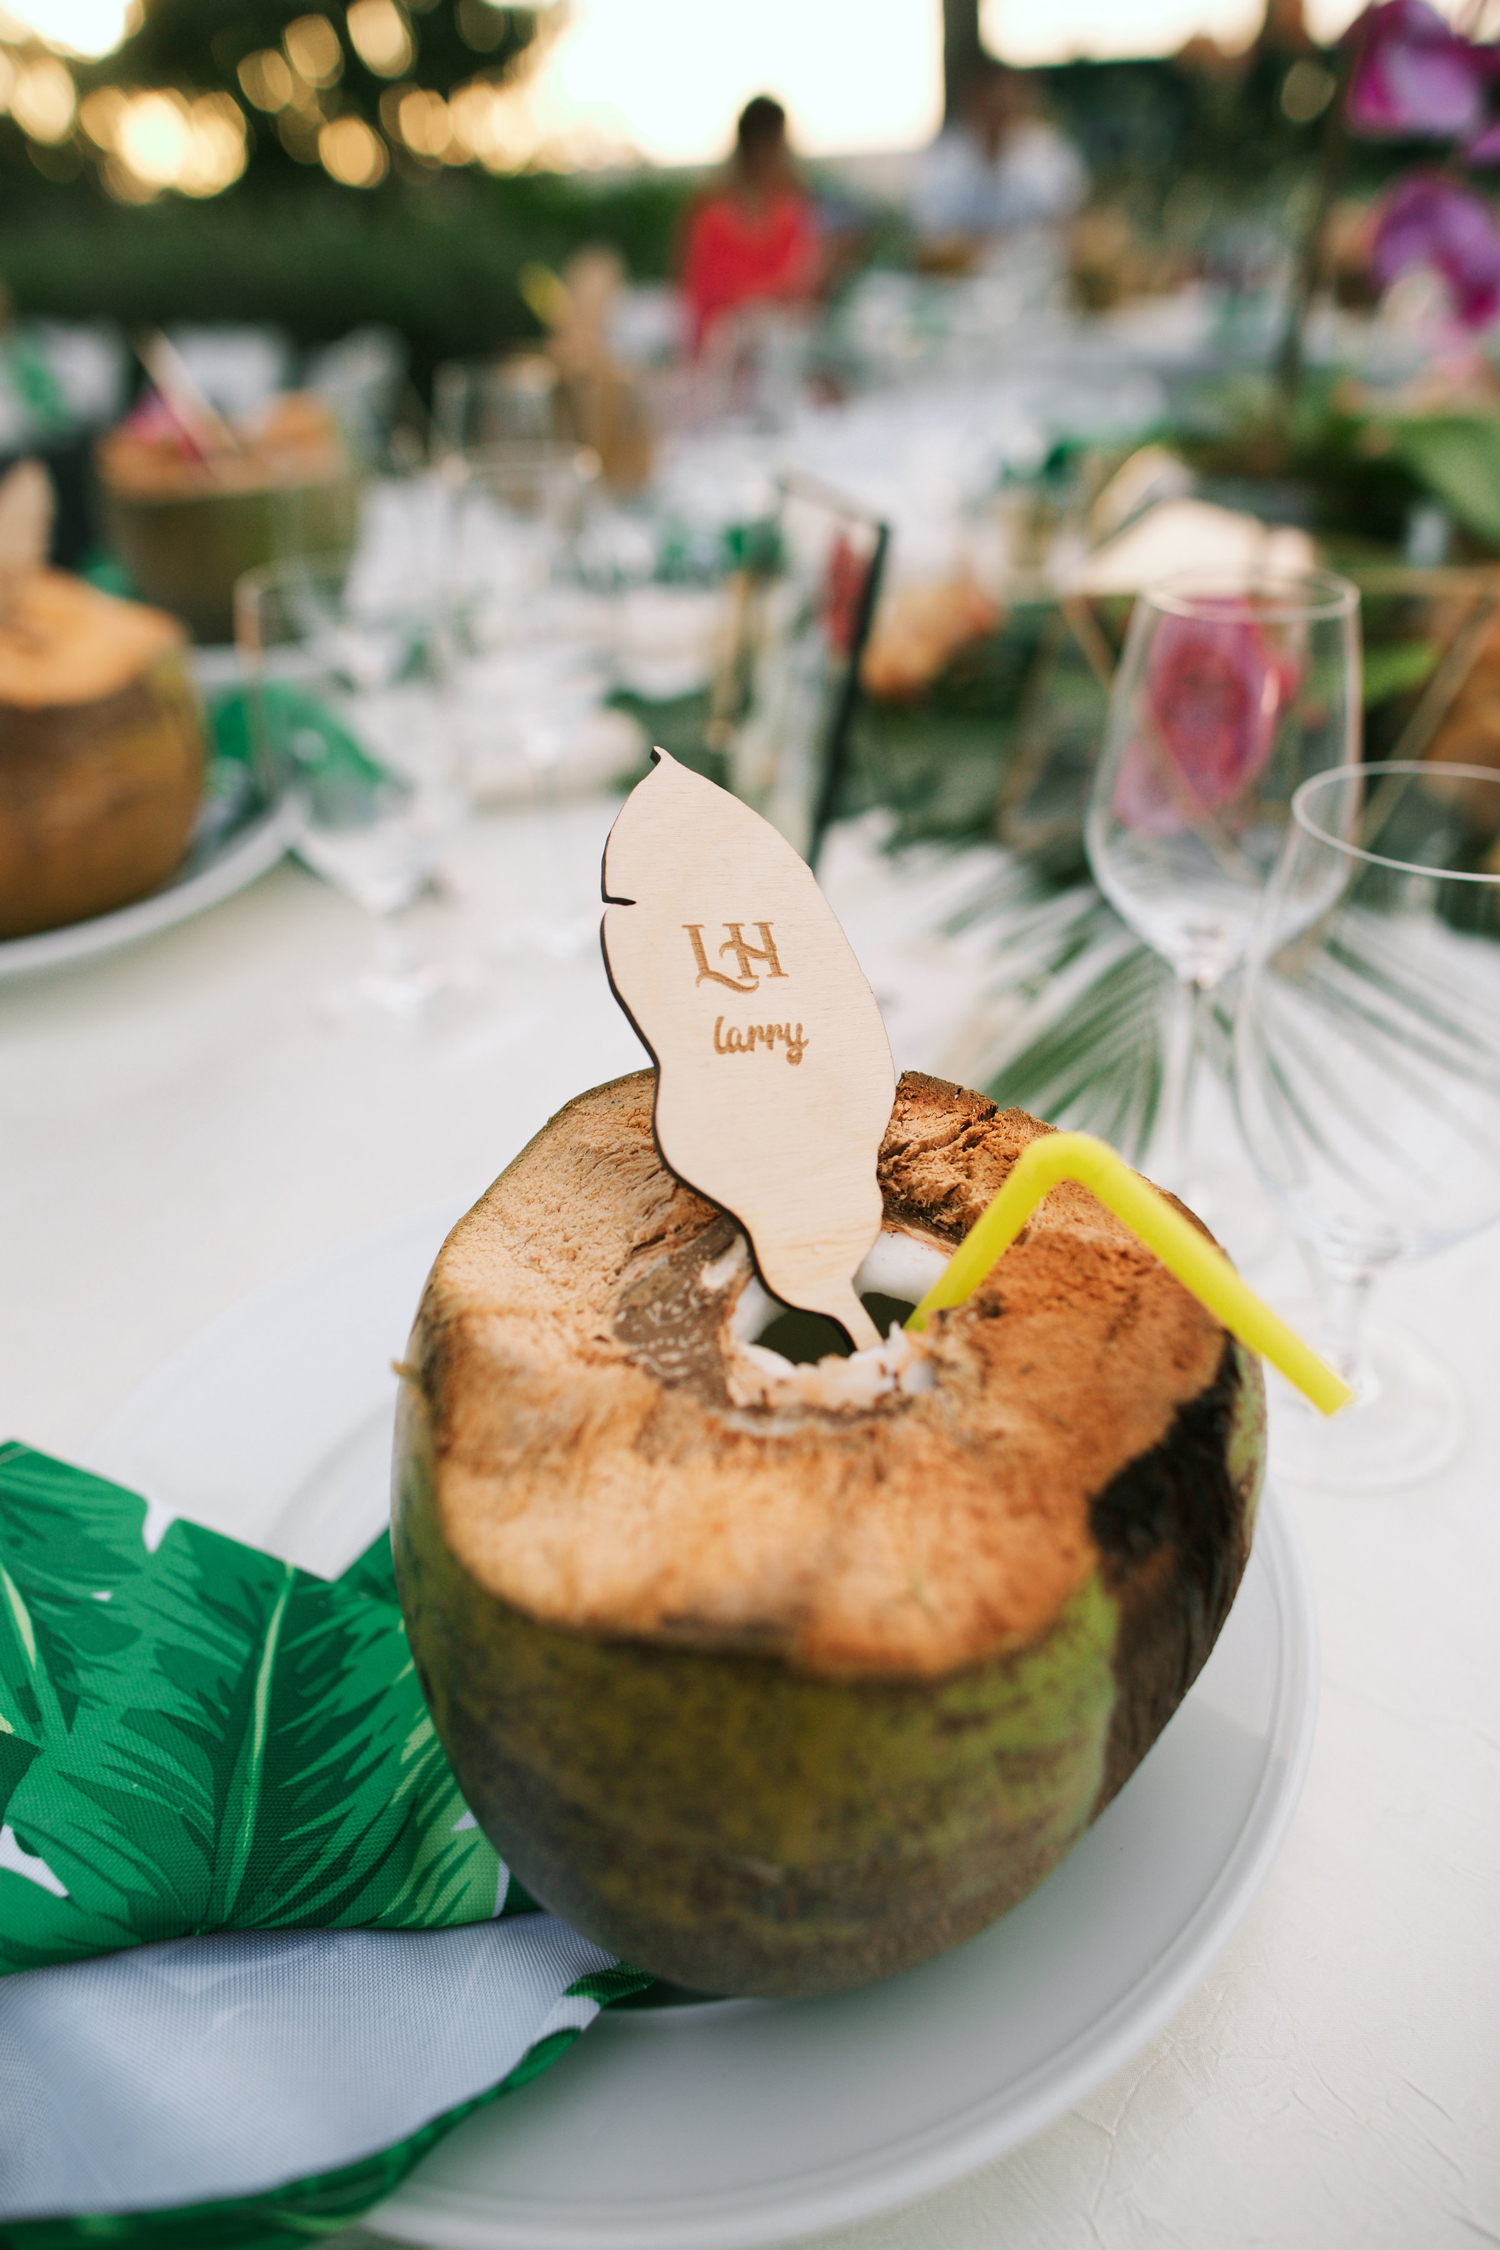 drinkable coconut with straw and wooden tropical leaf place card